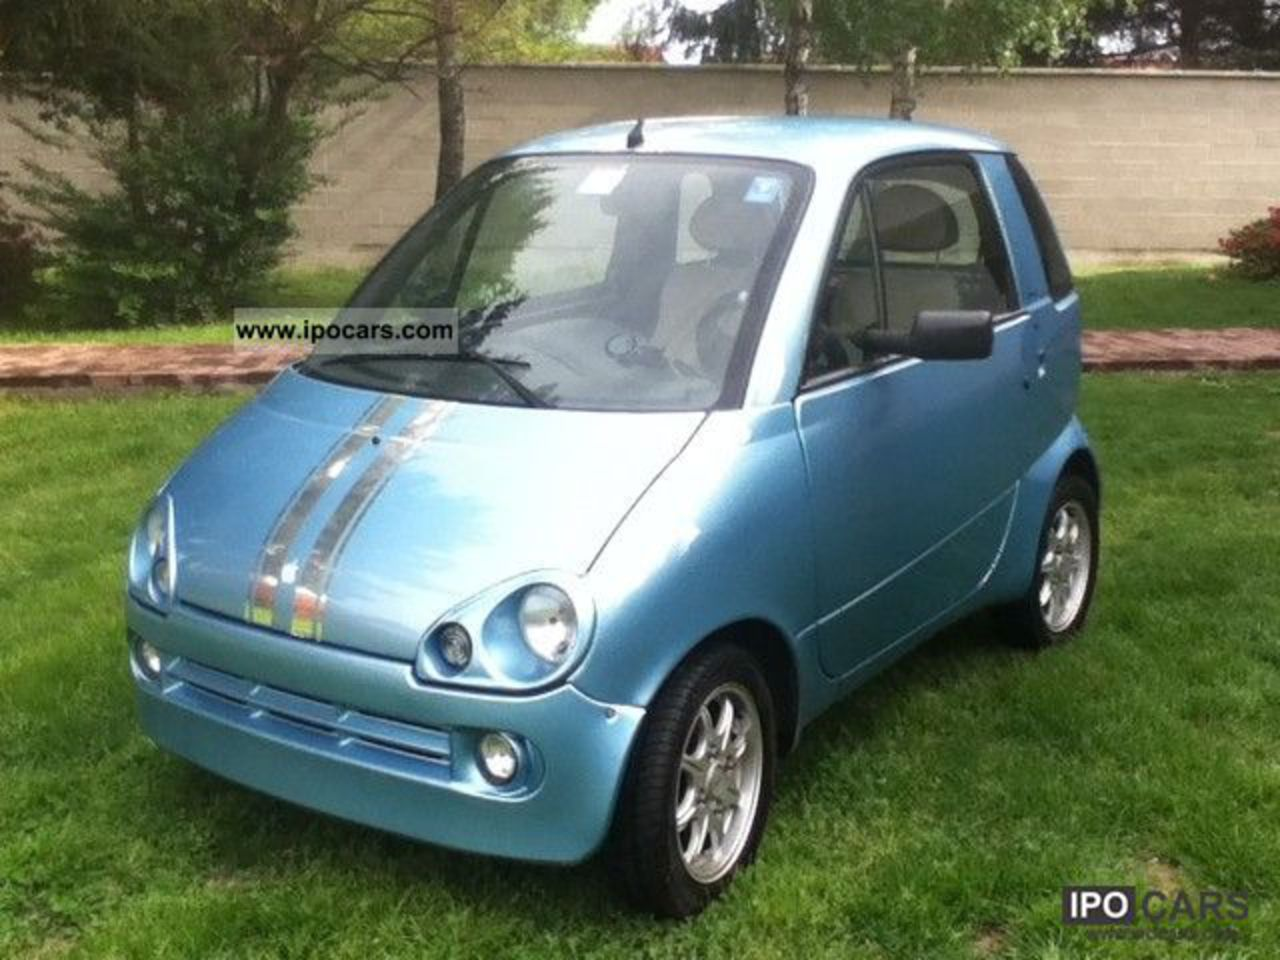 2002 Grecav EKE 505 XL - Car Photo and Specs